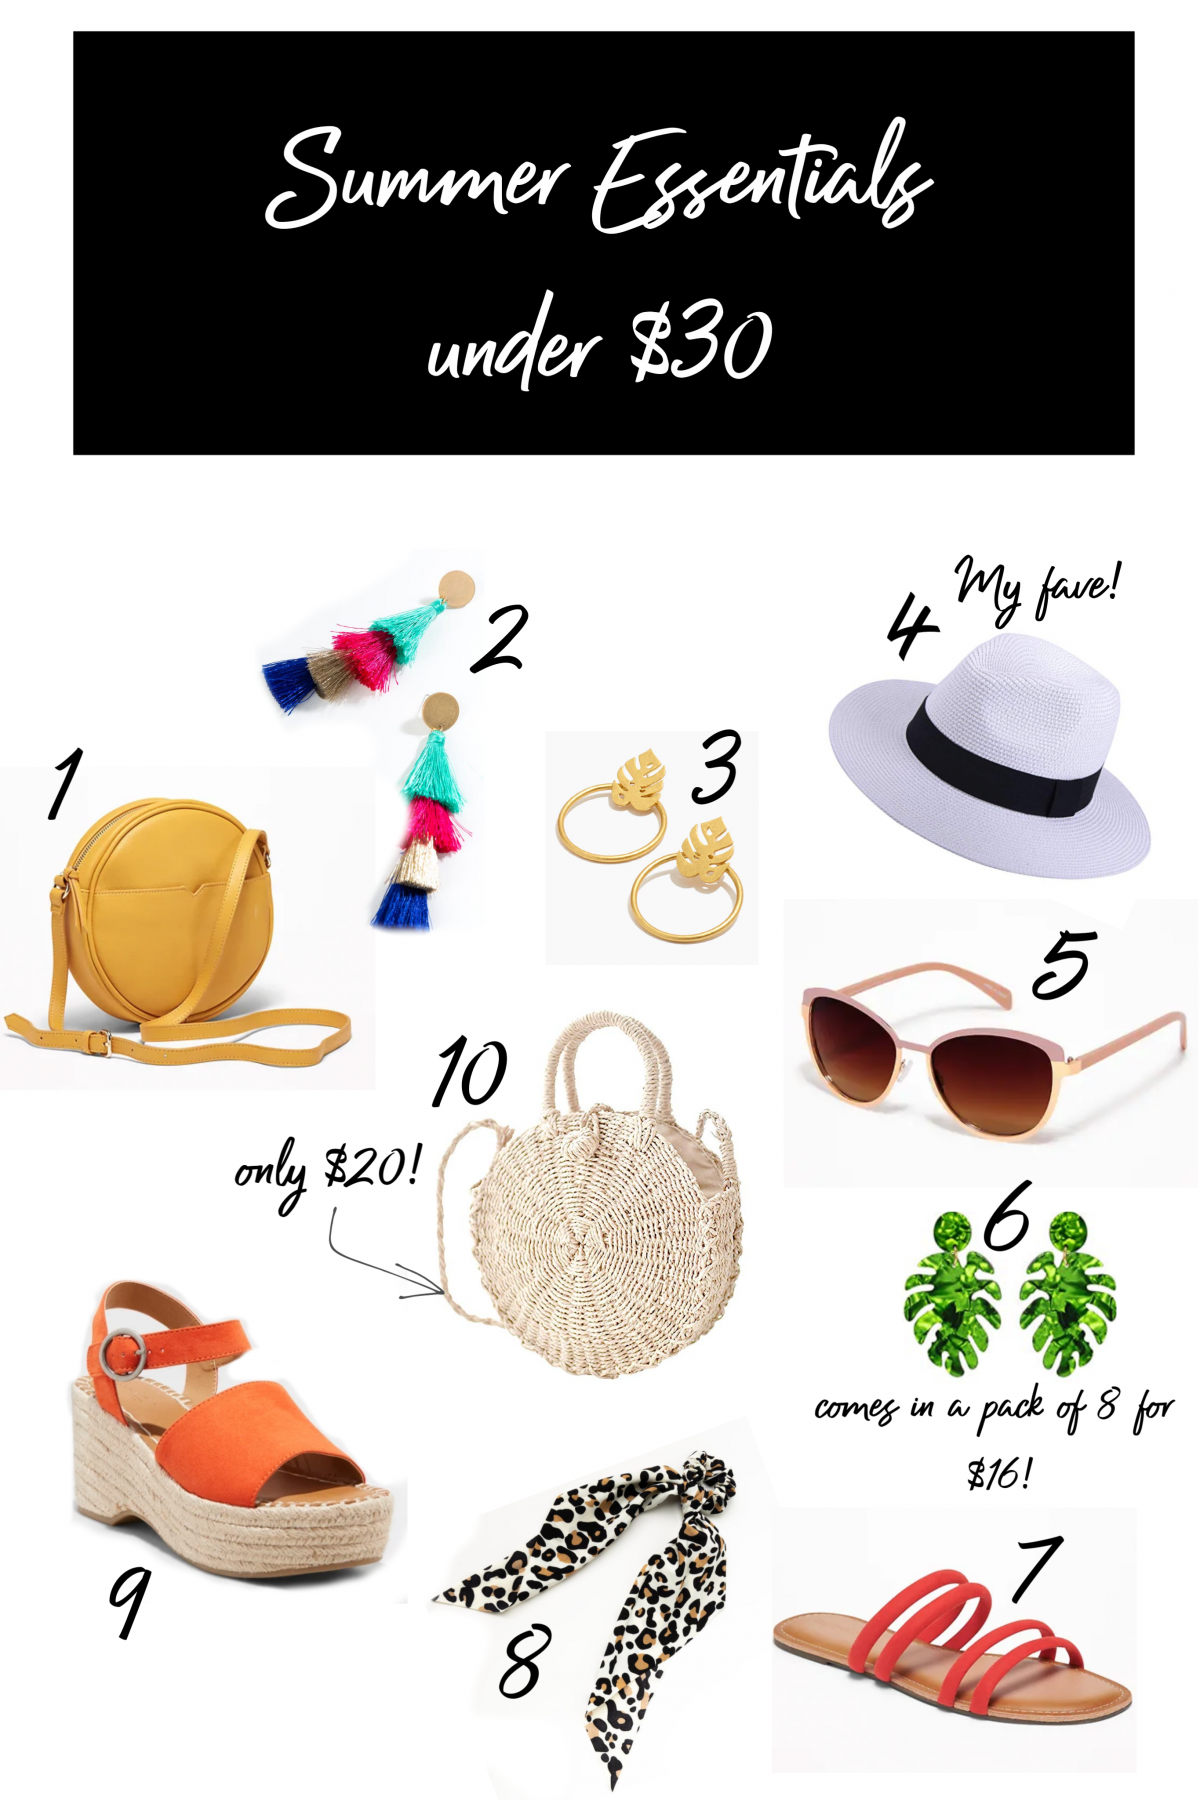 10 Essential Summer Accessories under $30